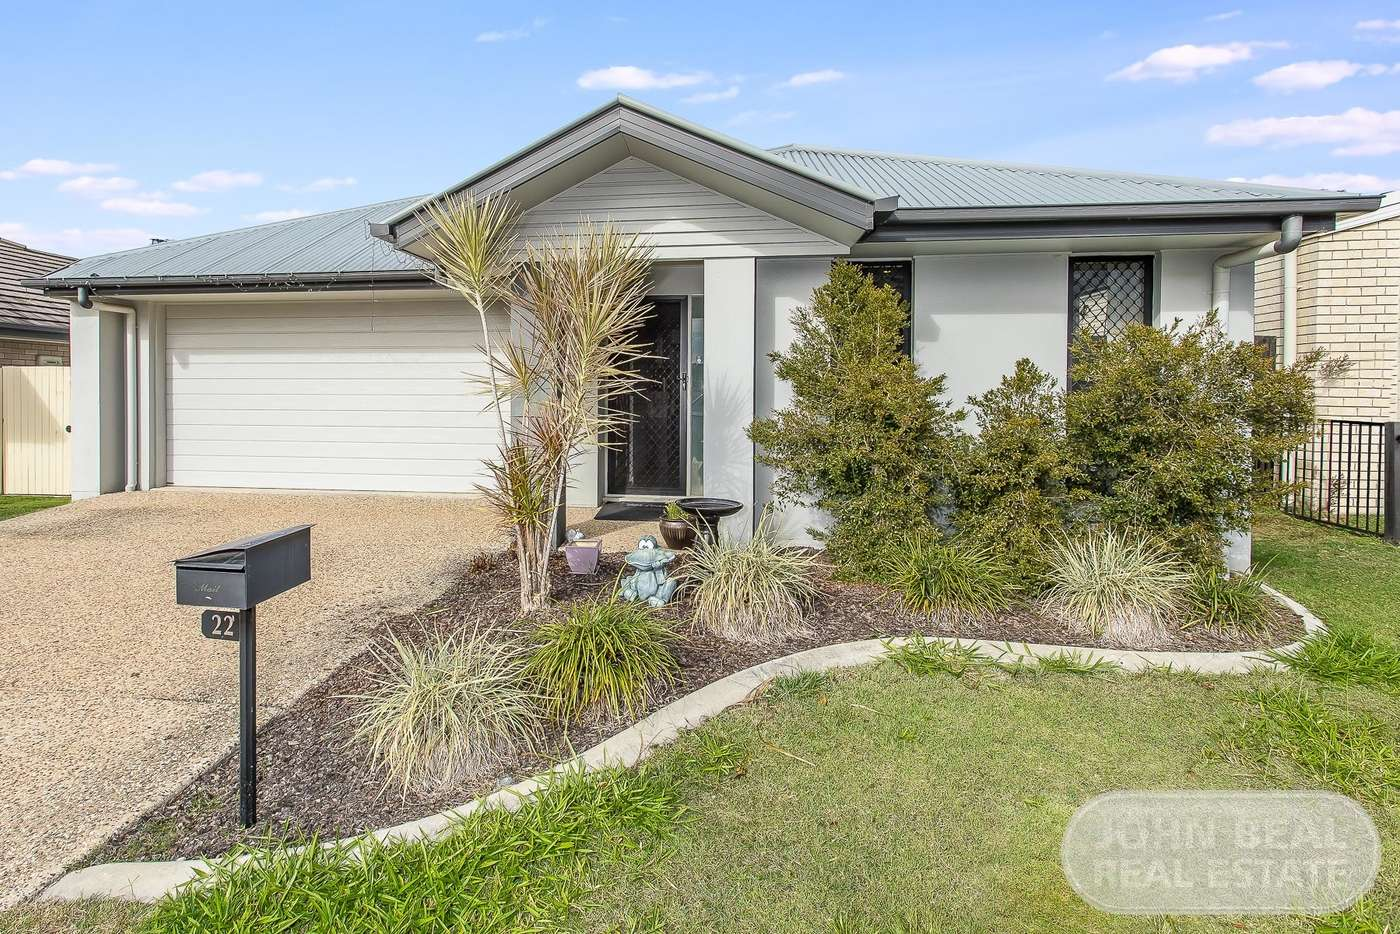 Main view of Homely house listing, 22 Dickson Cres, North Lakes QLD 4509